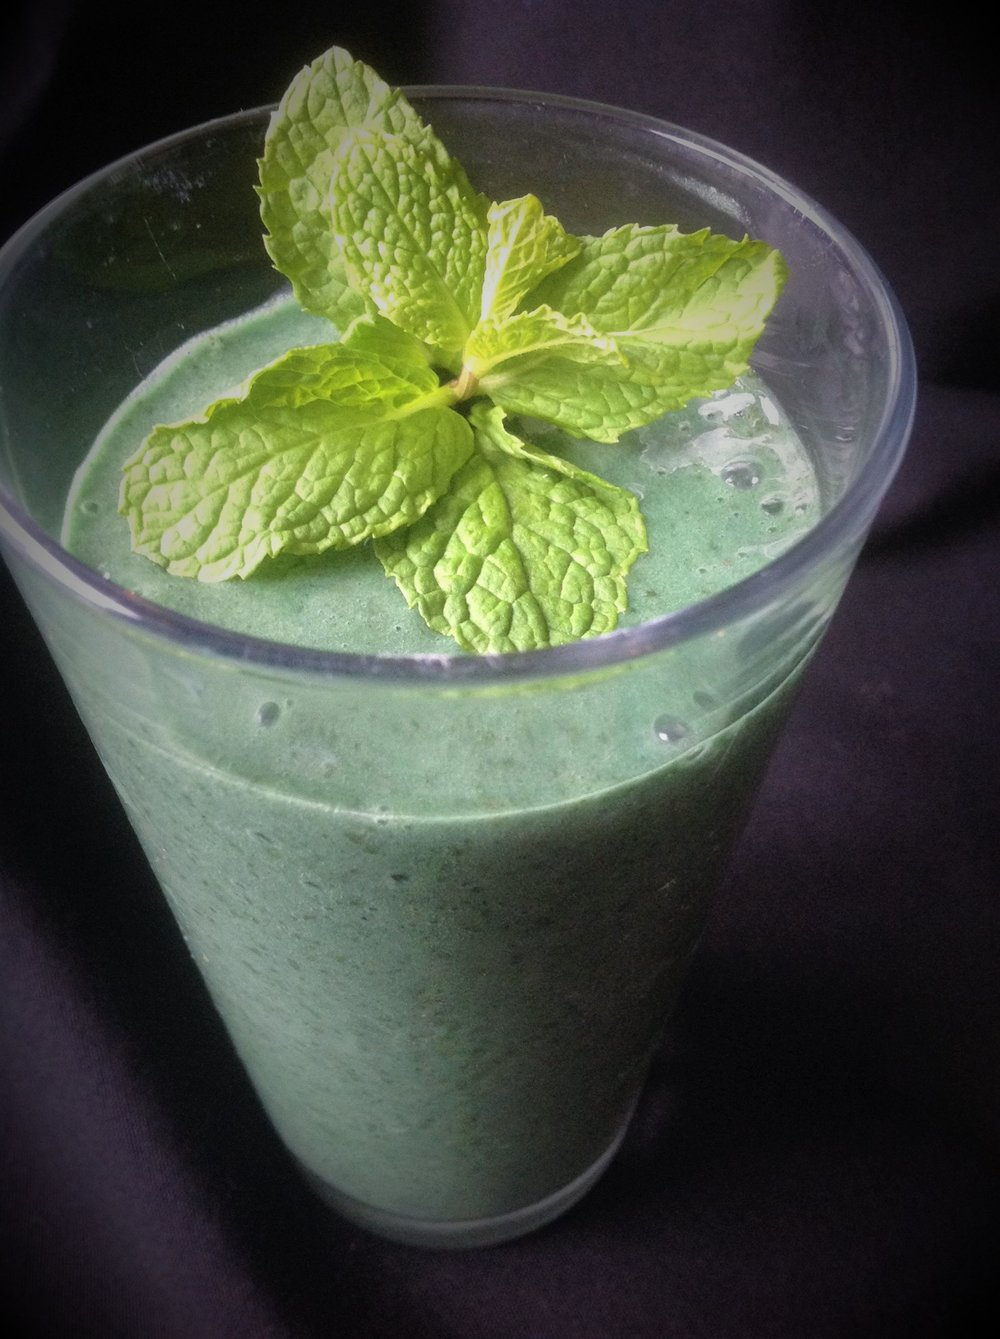 Chef's Tip:  Serve in a chilled glass and garnish with fresh mint for a beautiful, delicious presentation of this dairy-free vegan milkshake